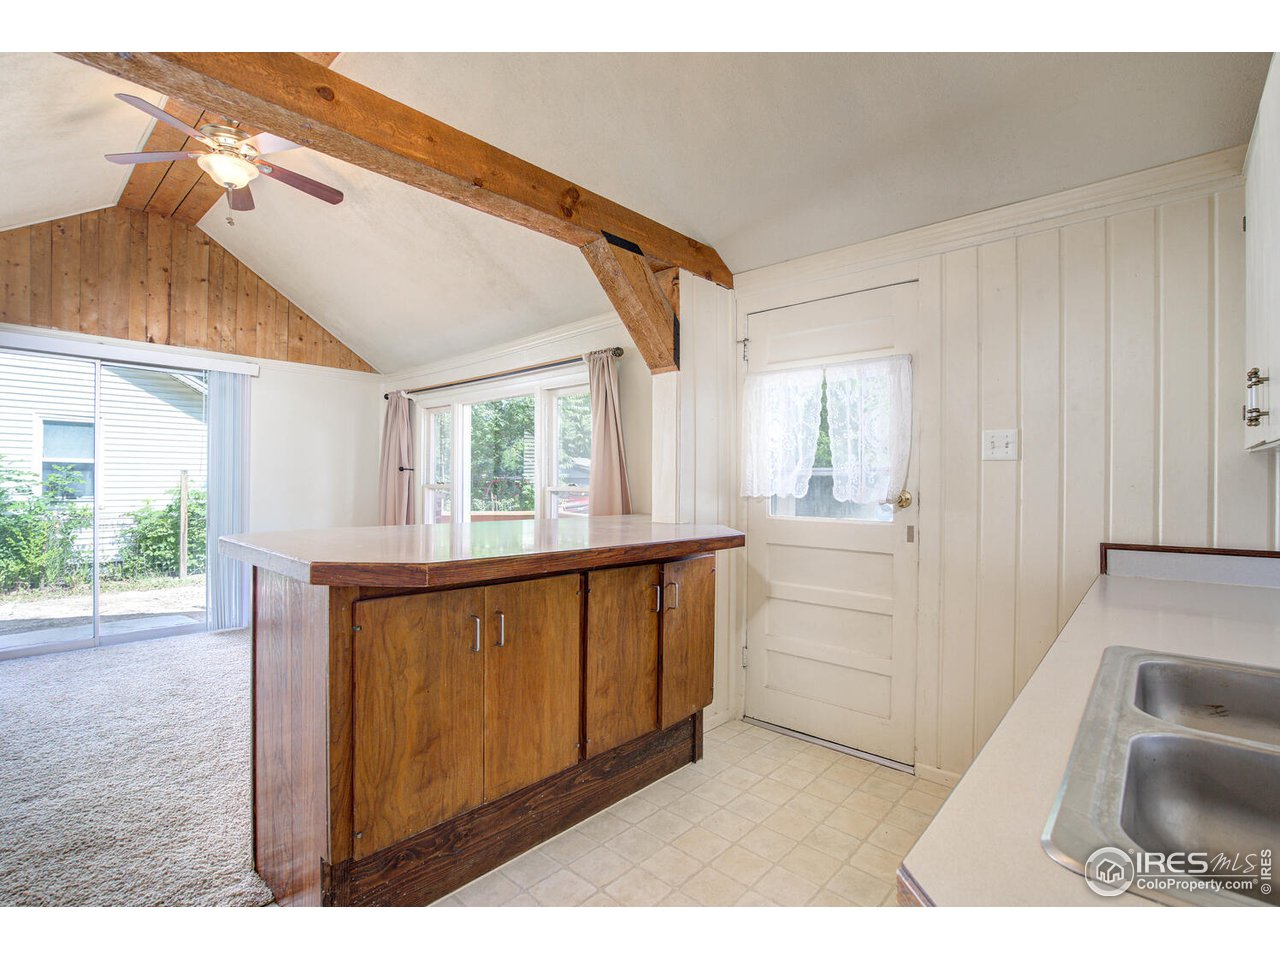 Step inside to find two bedrooms and full bathroom.